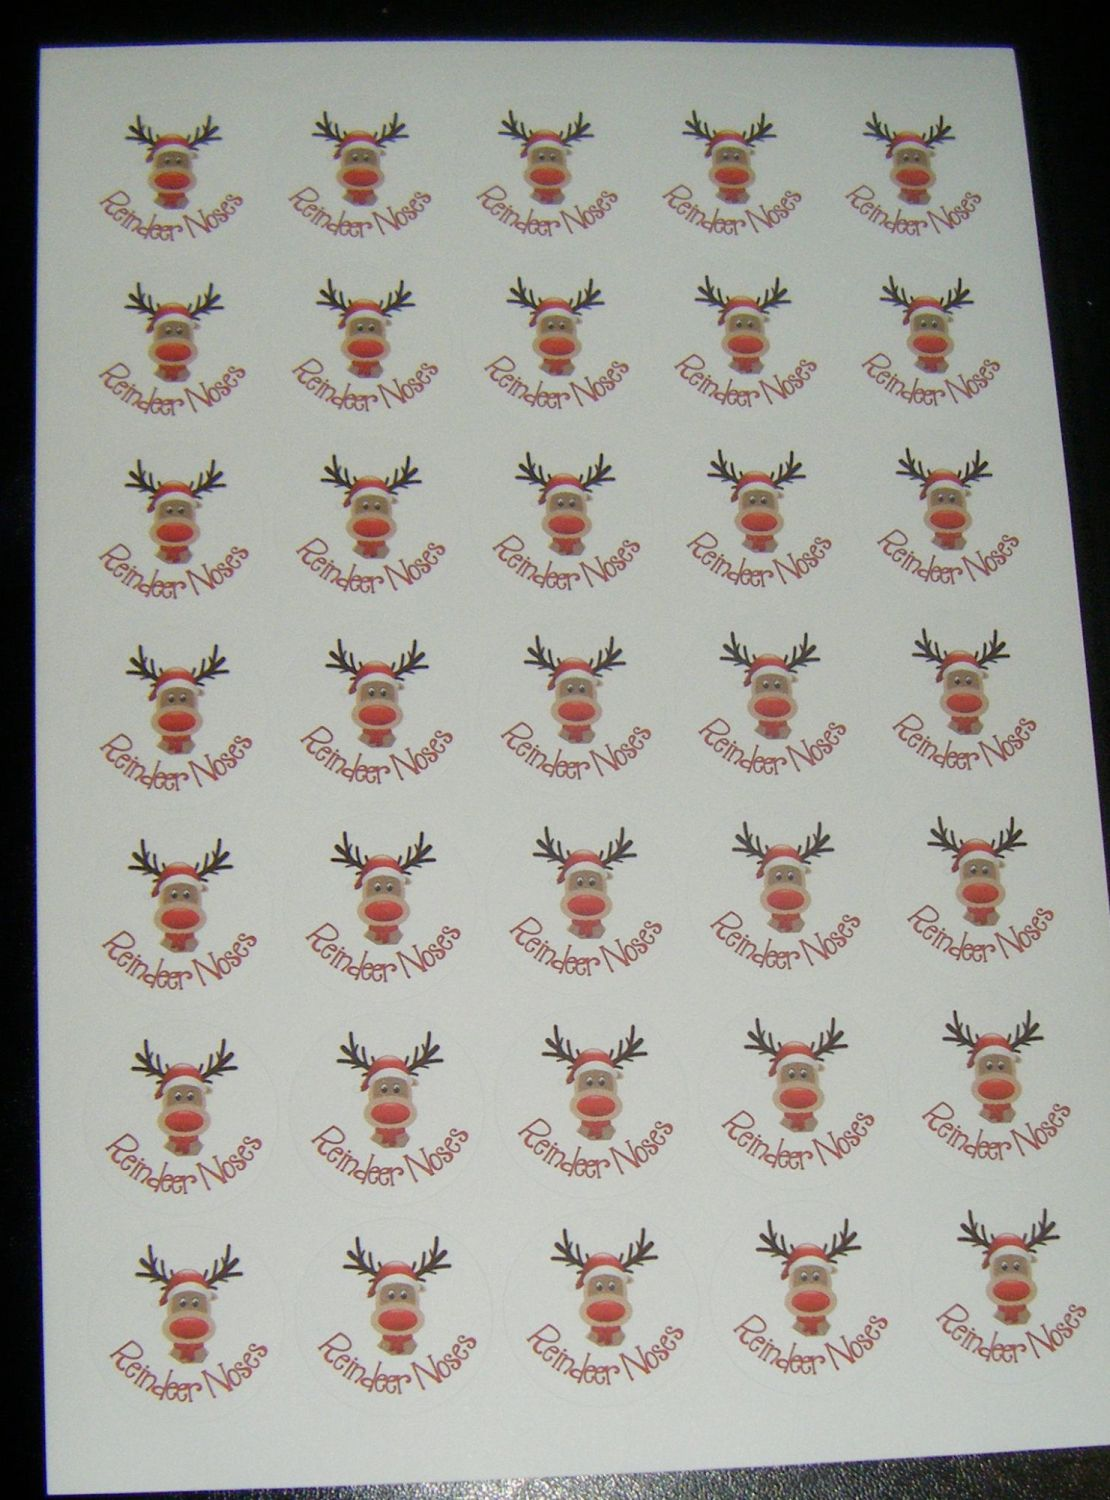 A4 Sheet of Round Reindeer Noses Stickers